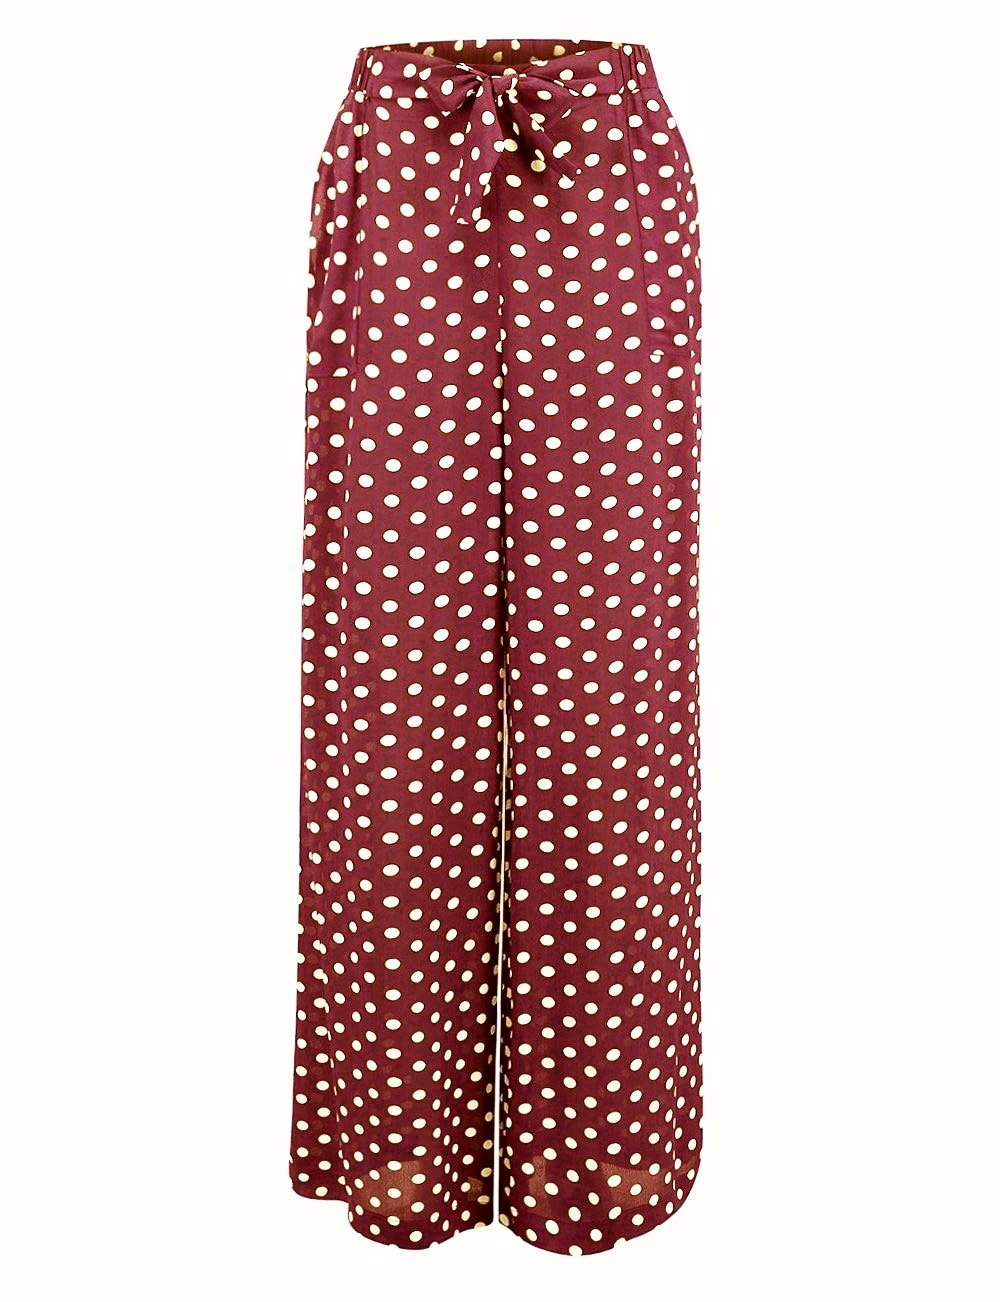 """Winnie"" Wide Leg Loose Fit Trousers in Wine with Polka Dot Spot by The Seamstress of Bloomsbury, Authentic Vintyage 1940s Style Vintage Inspired"